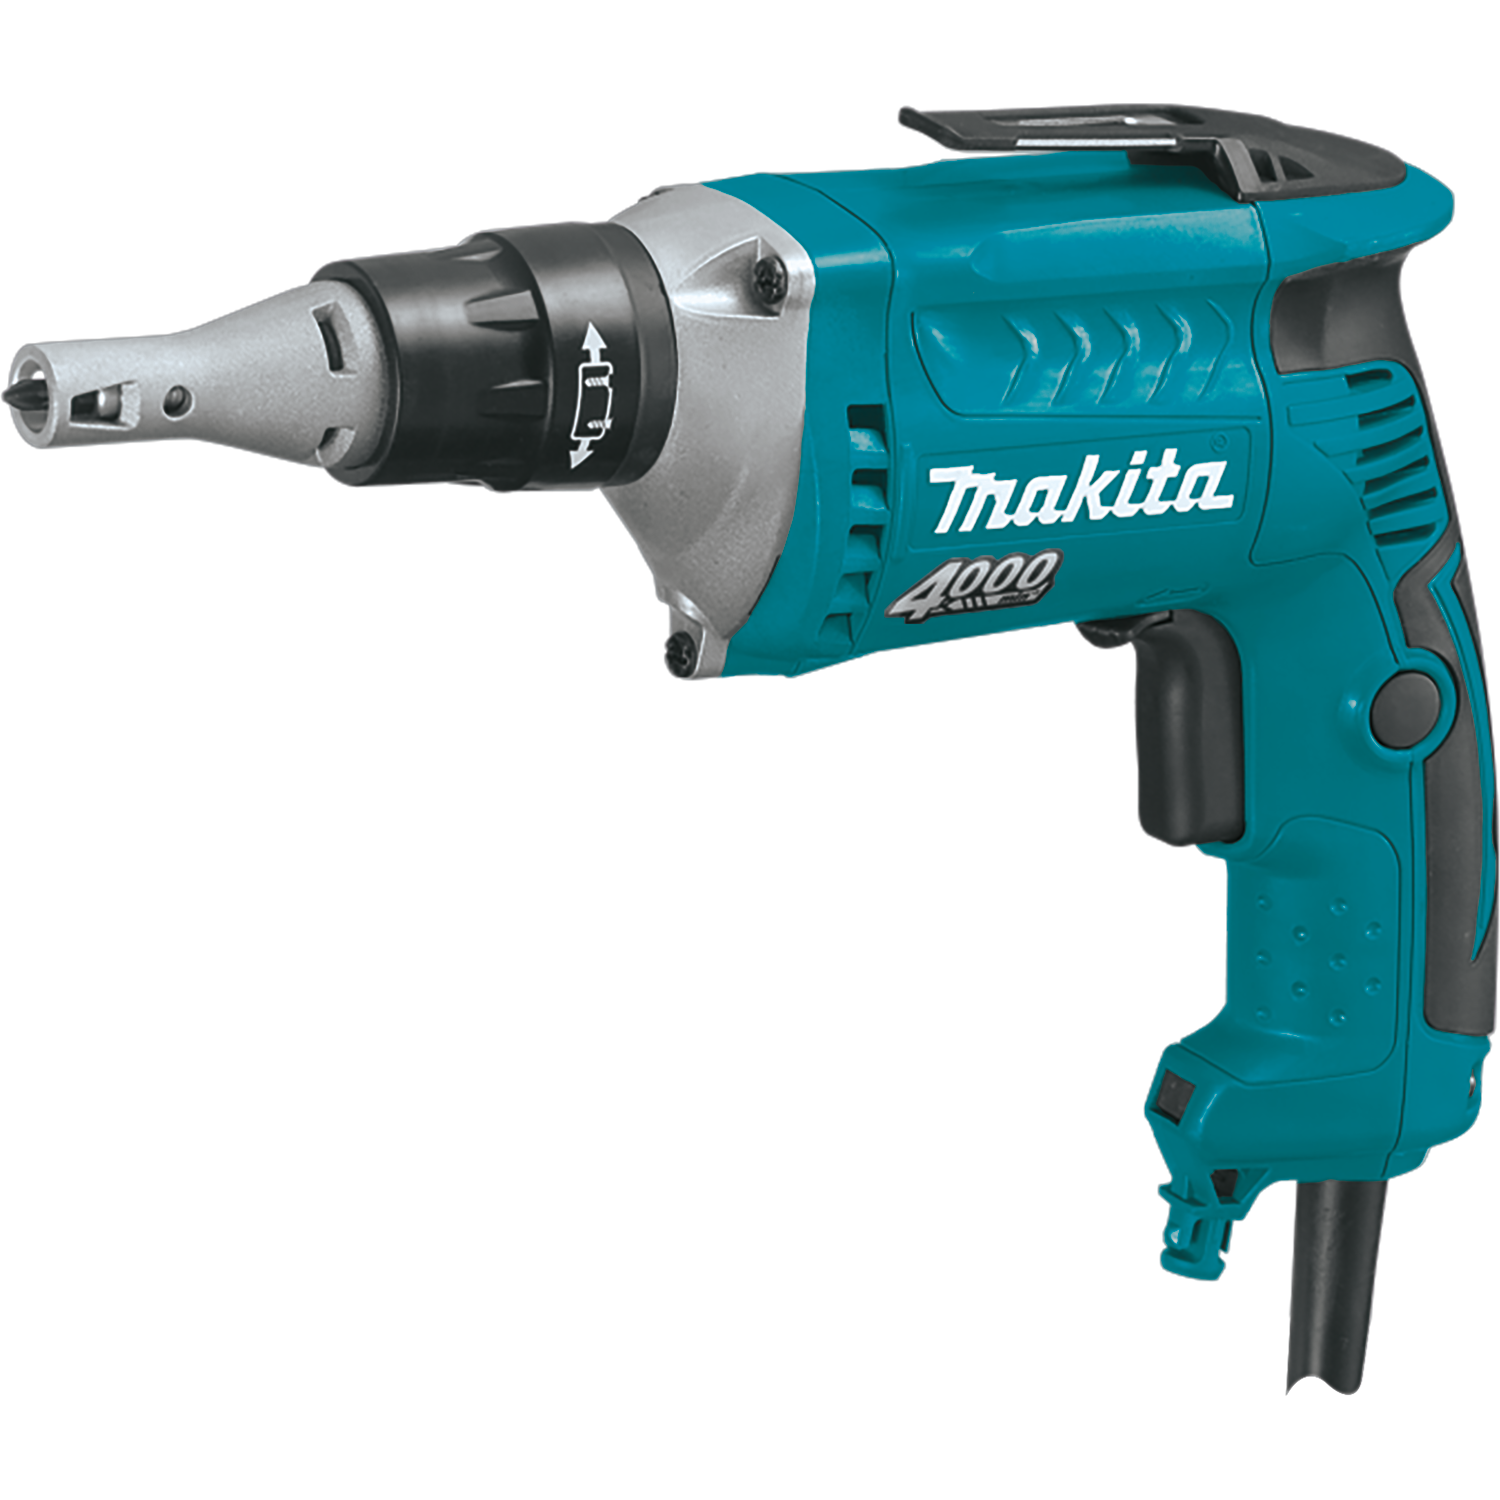 Makita USA - Product Details -FS4200